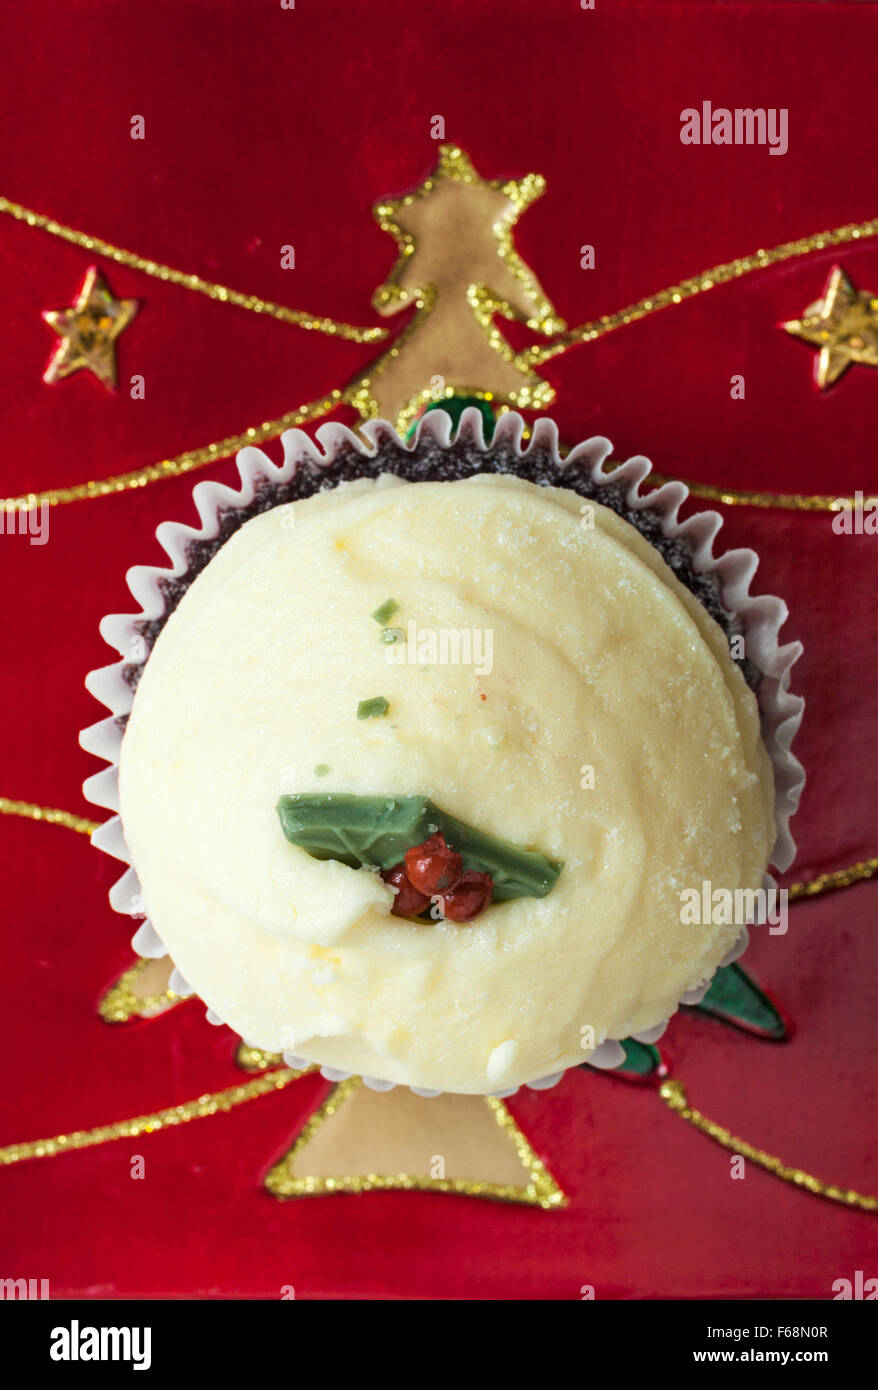 Christmas Pudding Red Velvet muffin on Christmas plate with gold tree and stars Stock Photo